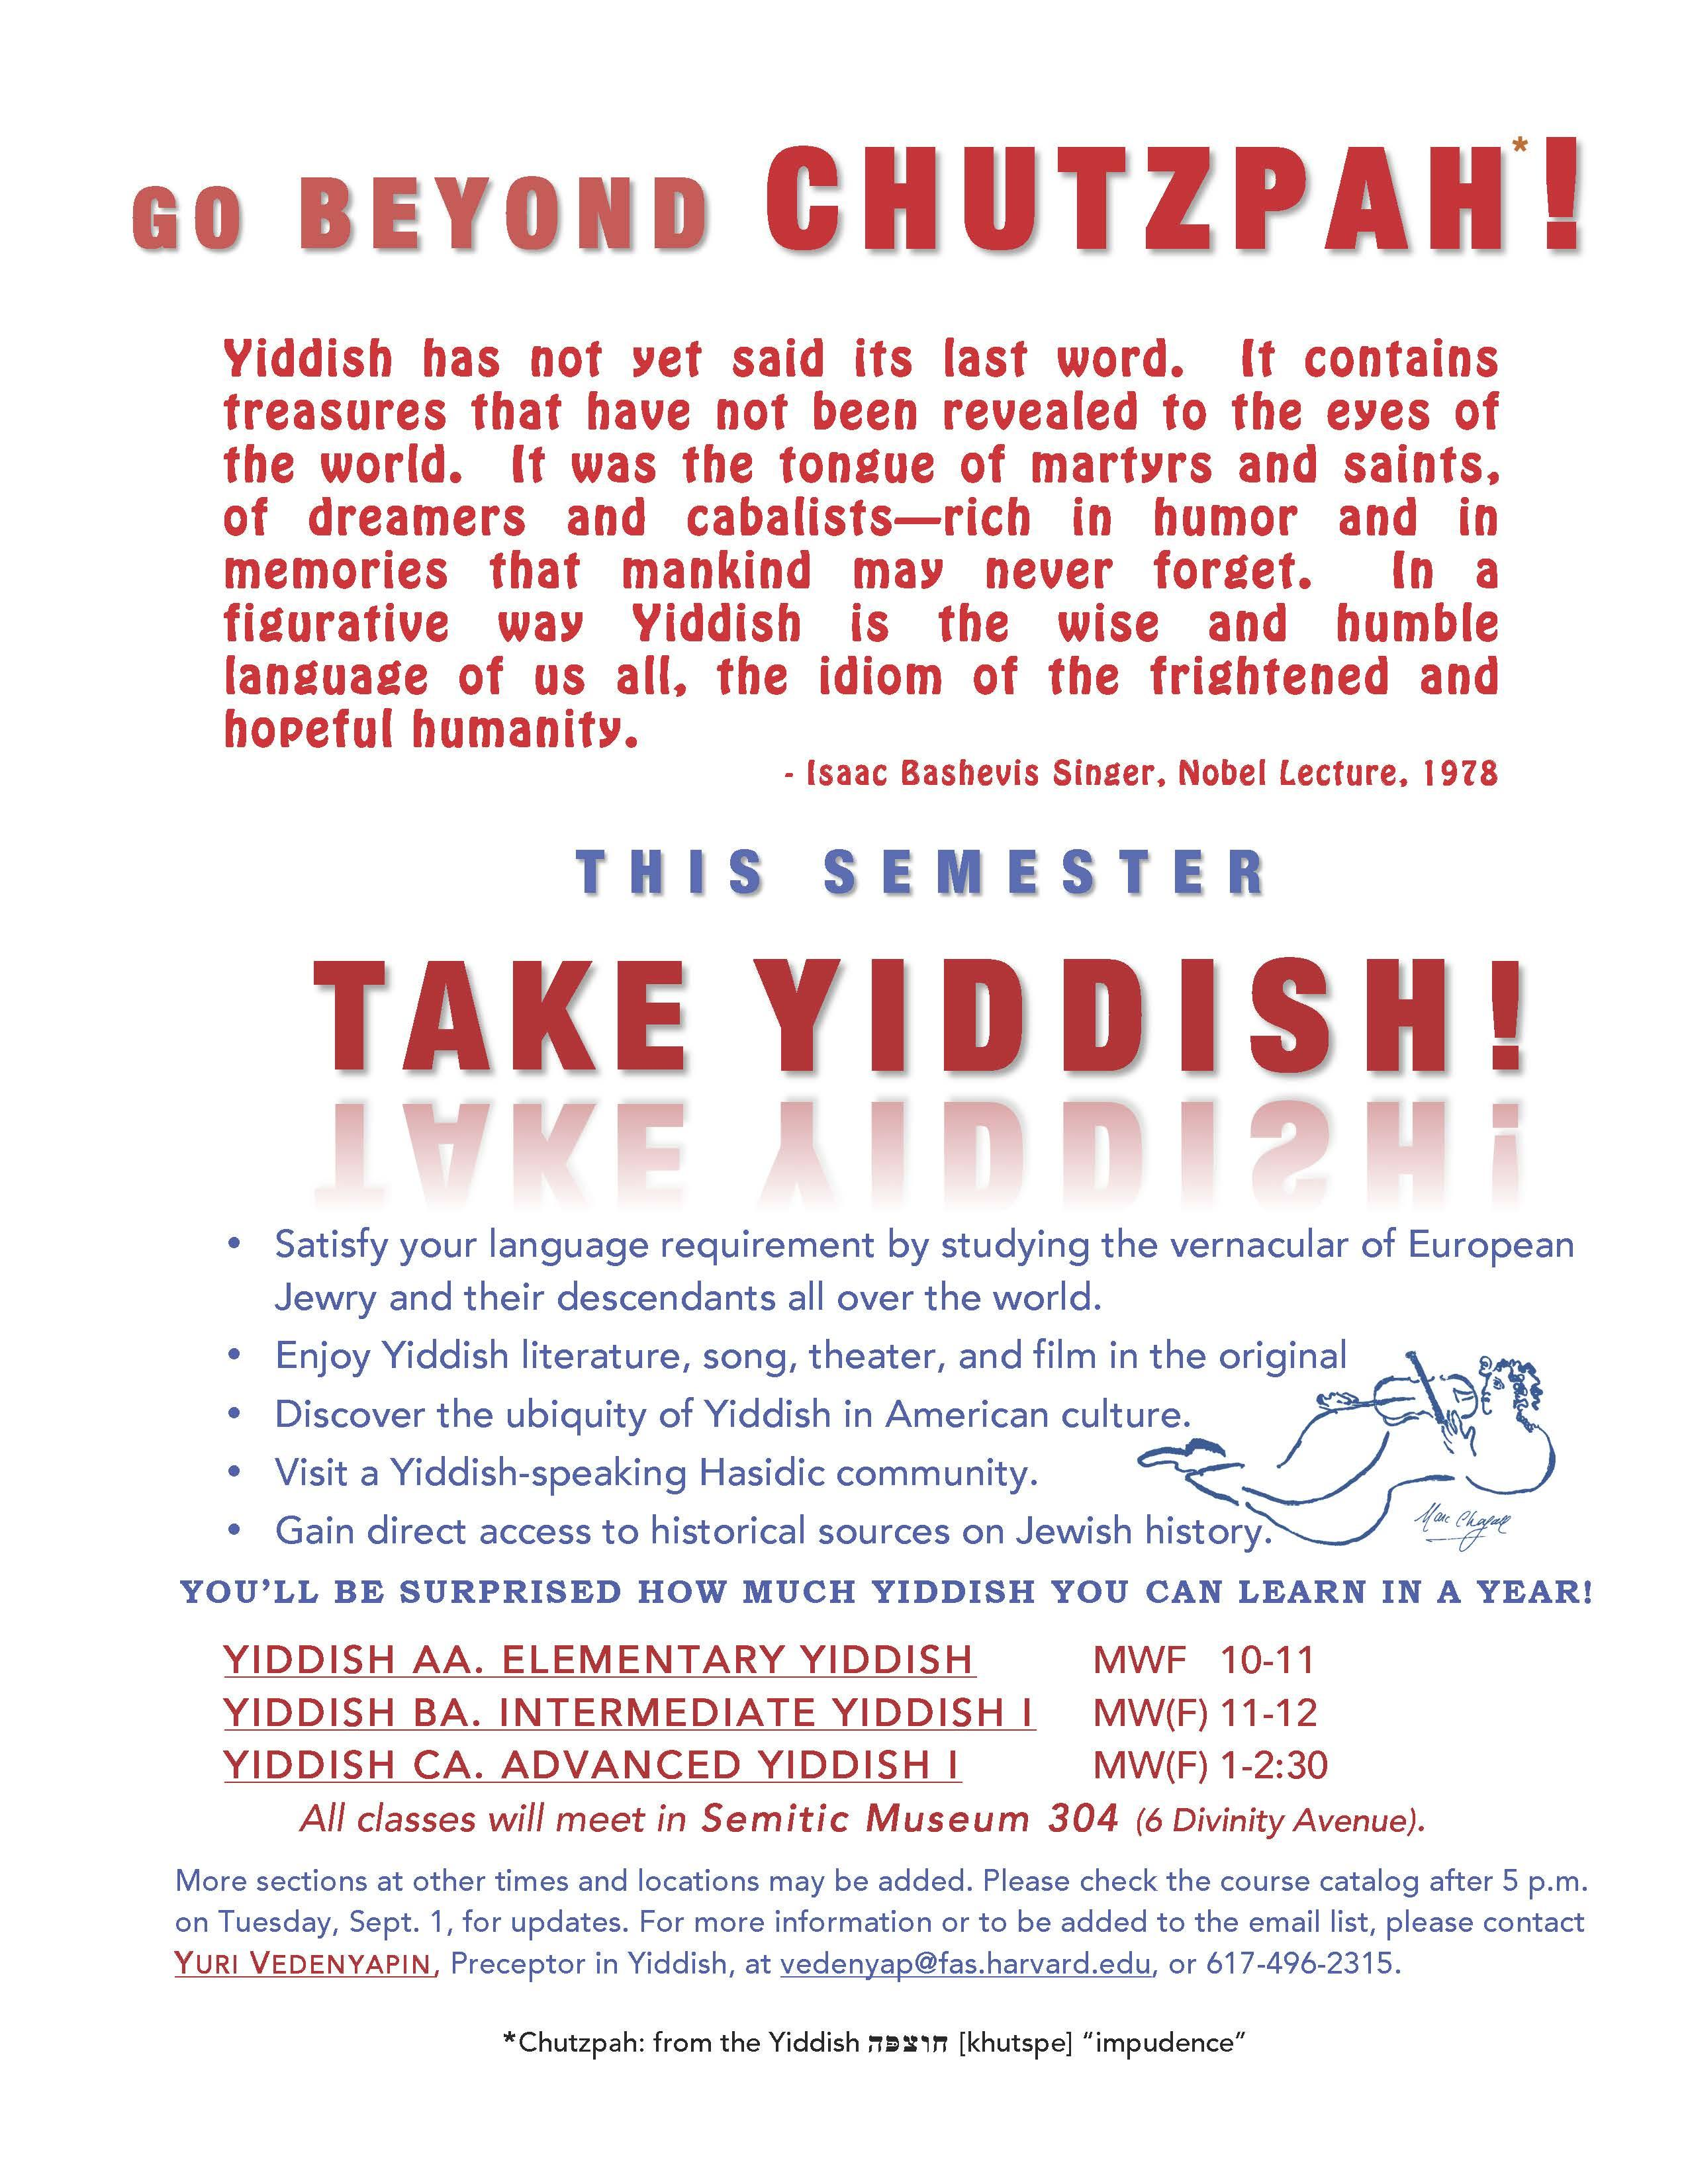 Communication on this topic: How to Learn Yiddish, how-to-learn-yiddish/